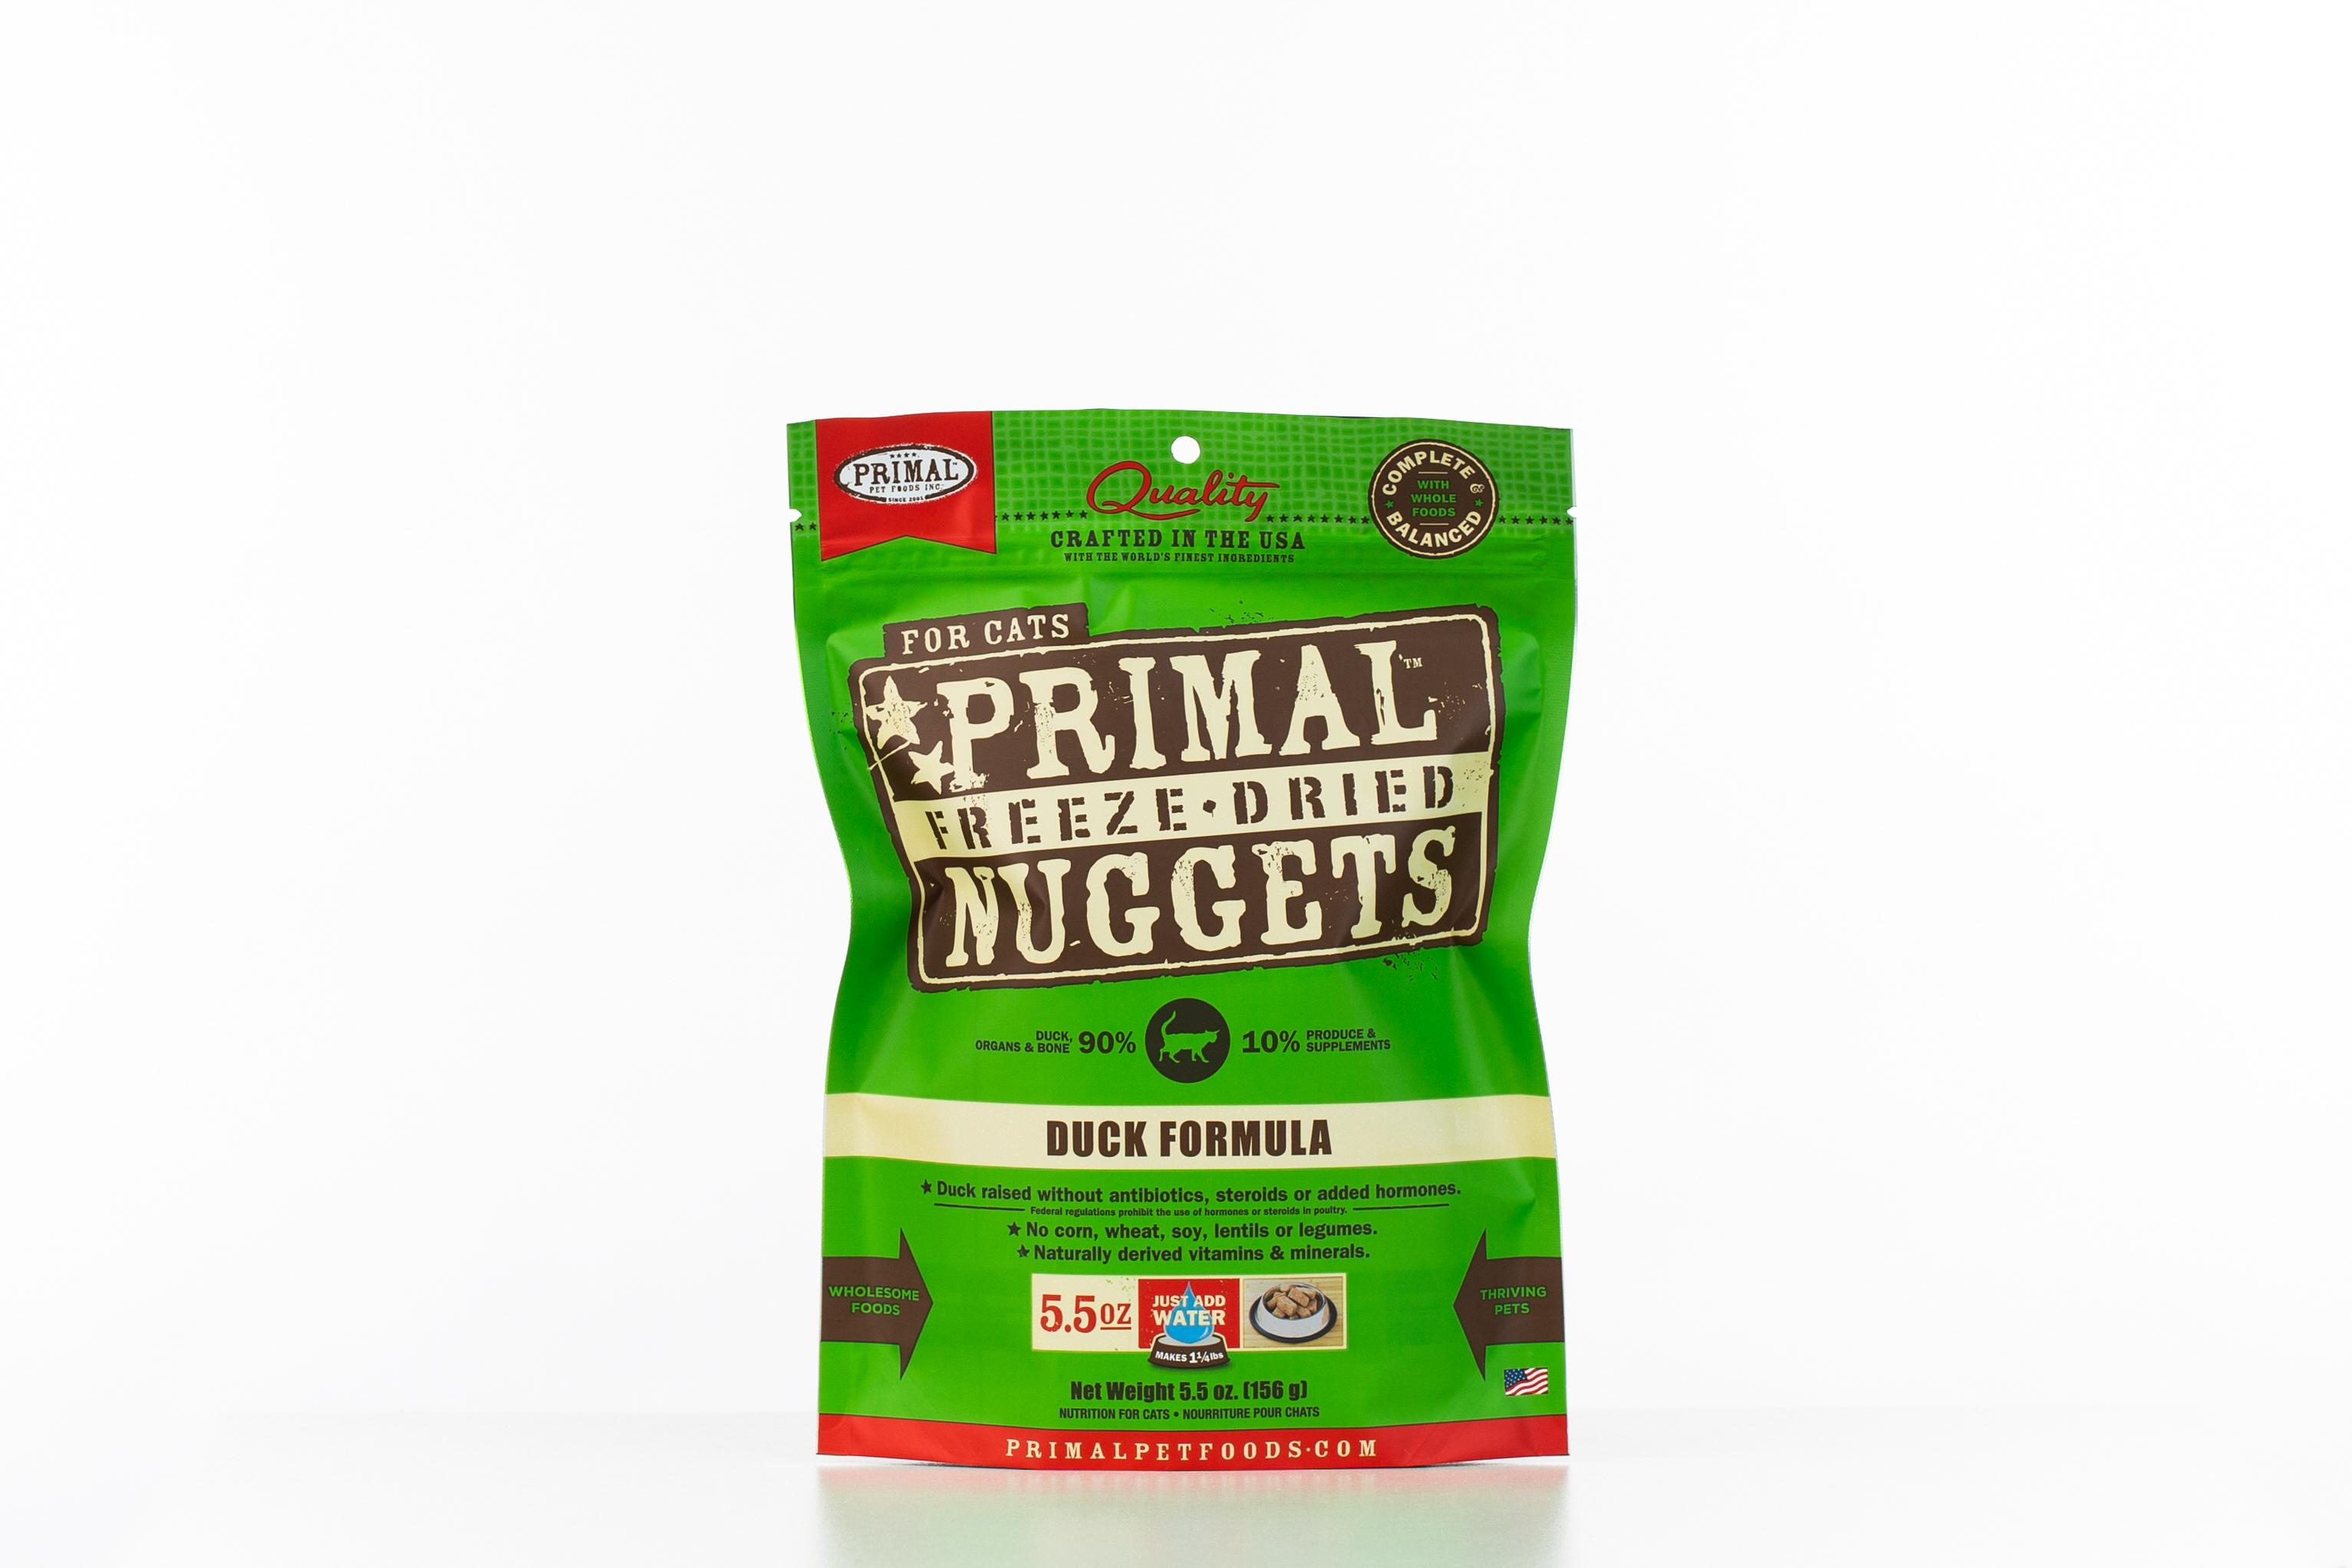 Primal Duck Formula Nuggets Grain-Free Raw Freeze-Dried Cat Food Image